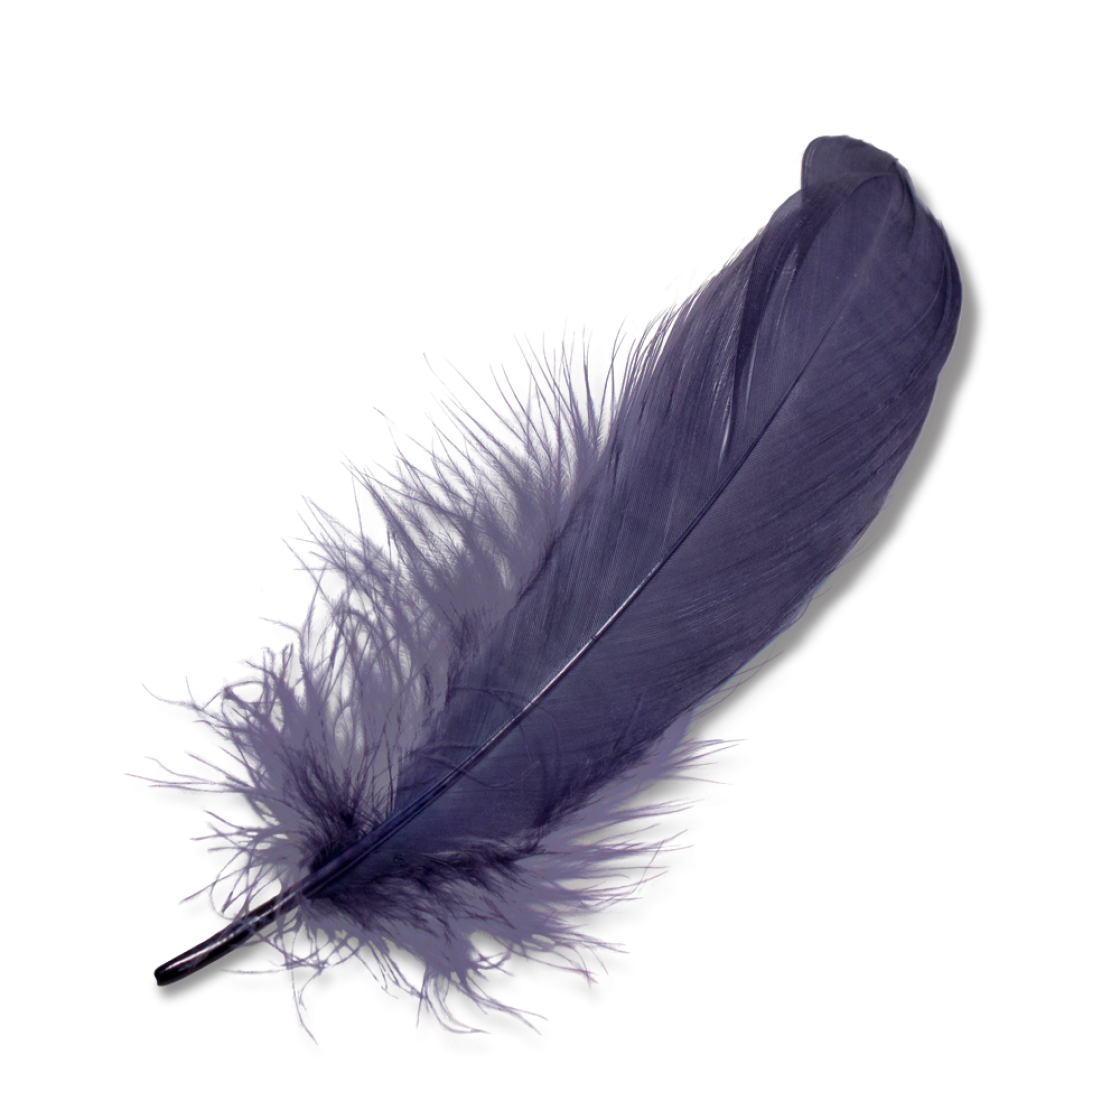 Transparent feathers lightweight. Feather png images free